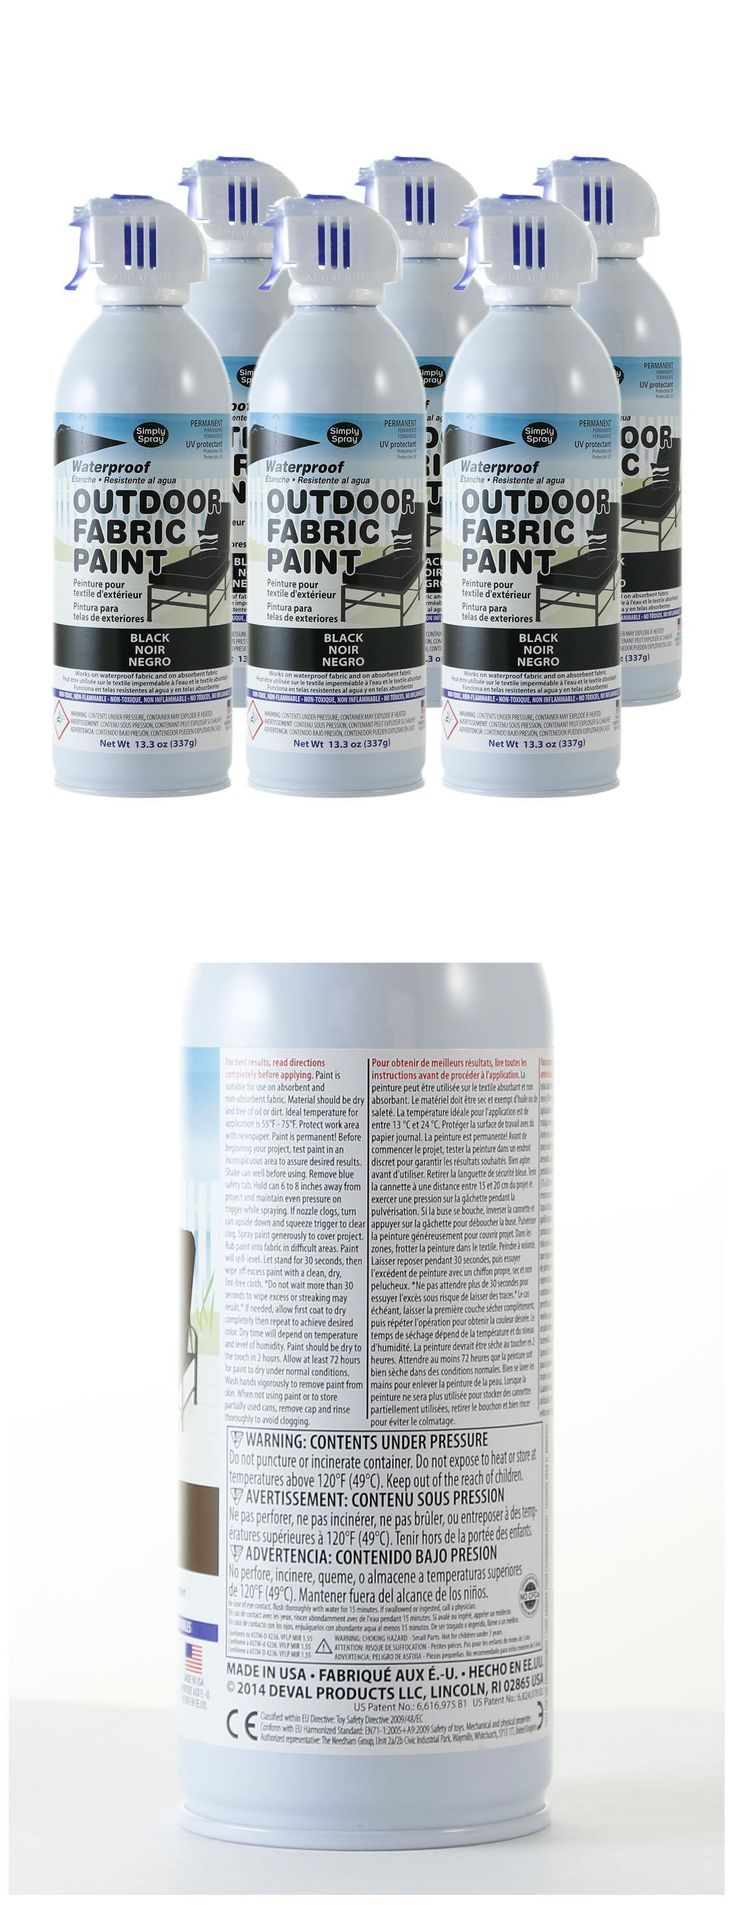 Fabric Paints and Markers 134560: Outdoor Waterproof Fabric Spray Paint For Furniture Boats Convertibles - 6 Pack -> BUY IT NOW ONLY: $84 on eBay!